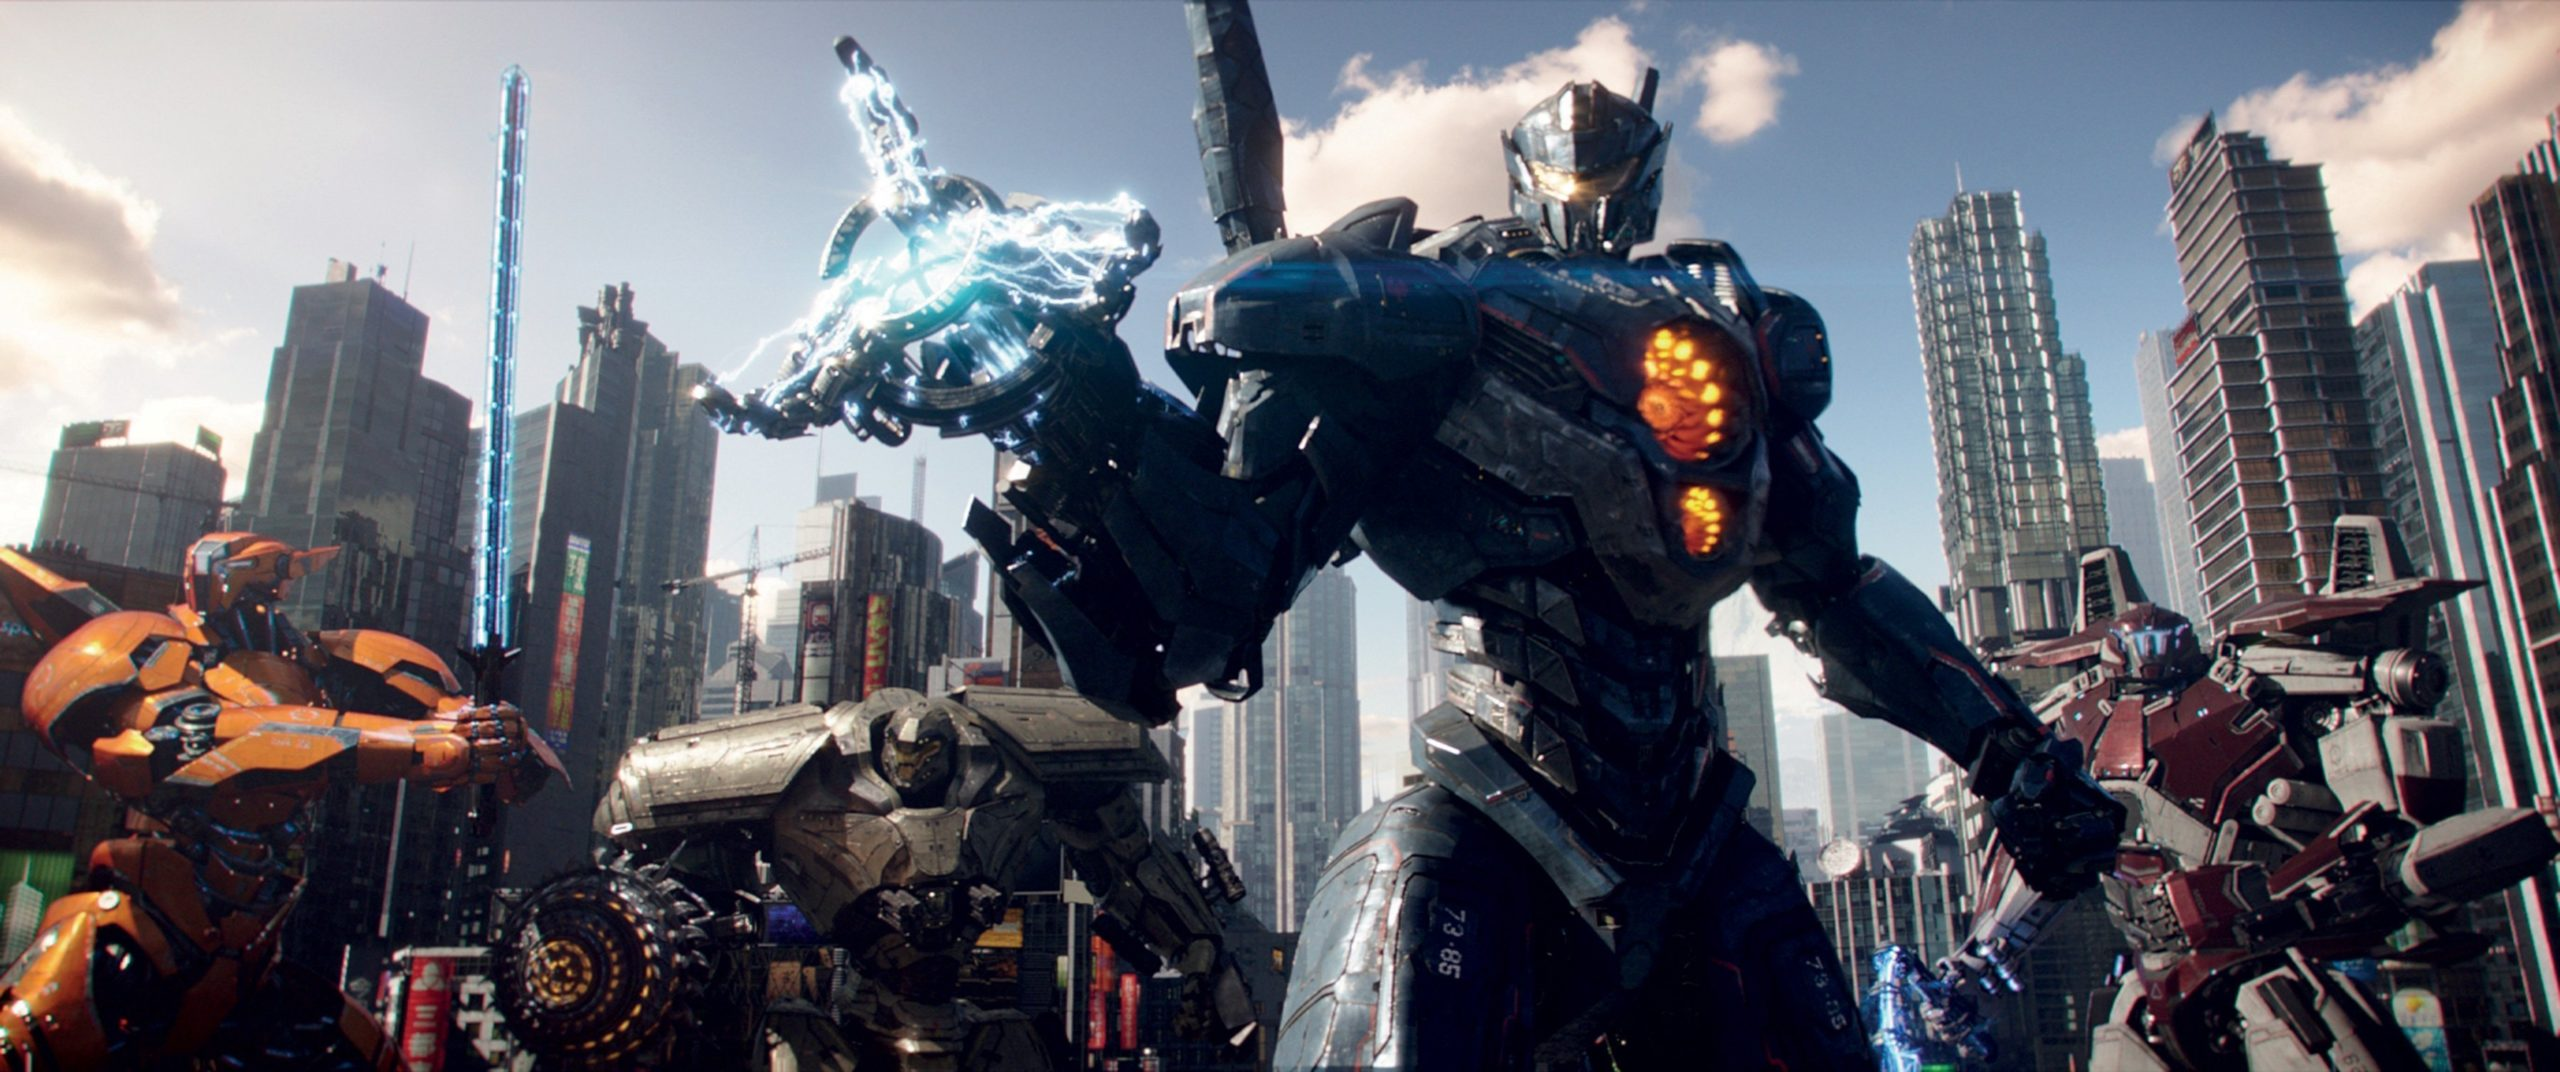 Photo du film Pacific Rim: Uprising avec les Jaegers ensemble